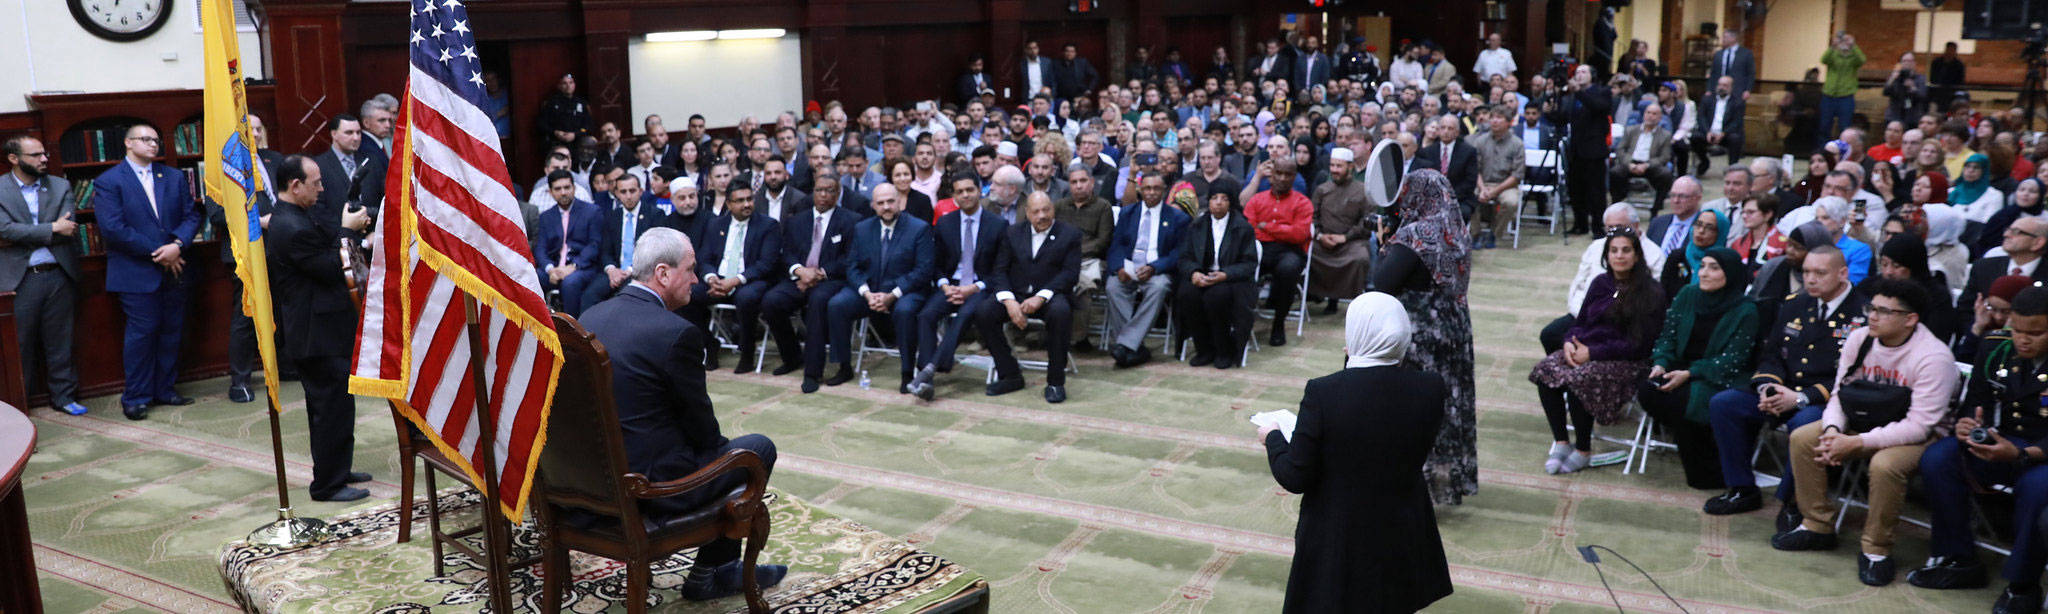 the first town hall meeting with a governor at a mosque in the history of New Jersey.